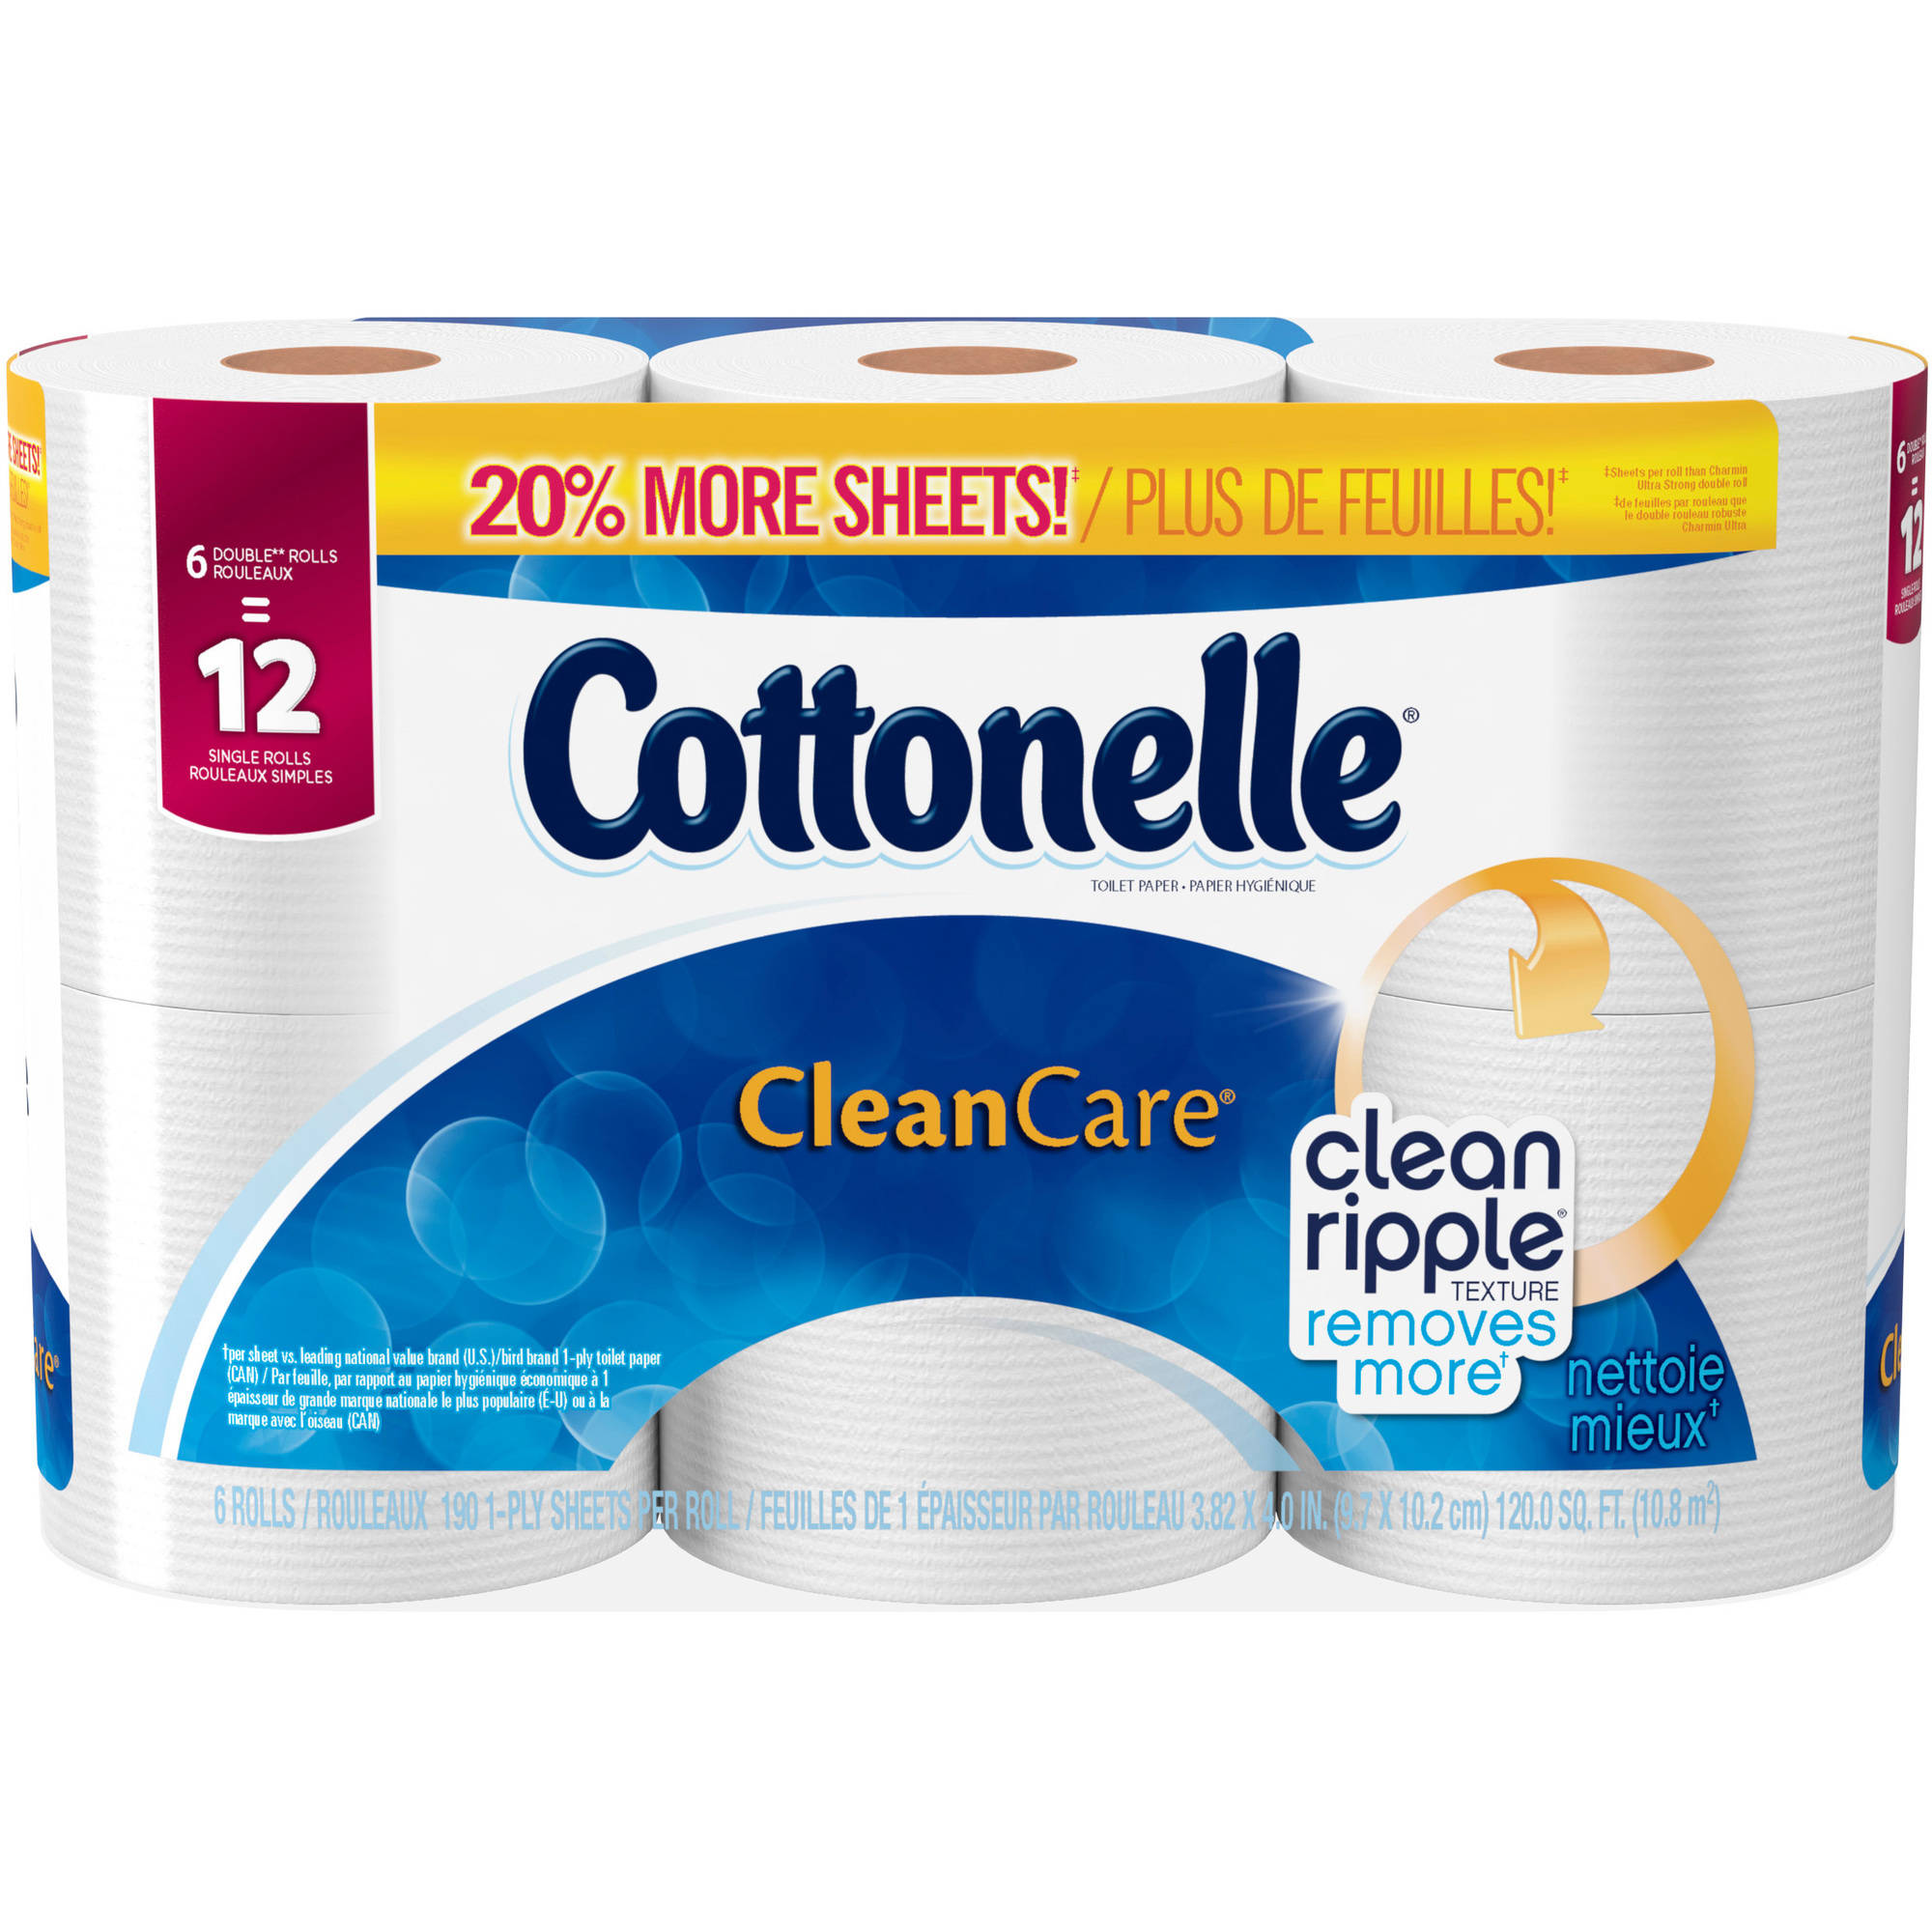 Cottonelle Clean Care Toilet Paper Double Rolls, 208 SHeets, 6 rolls by KIMBERLY-CLARK